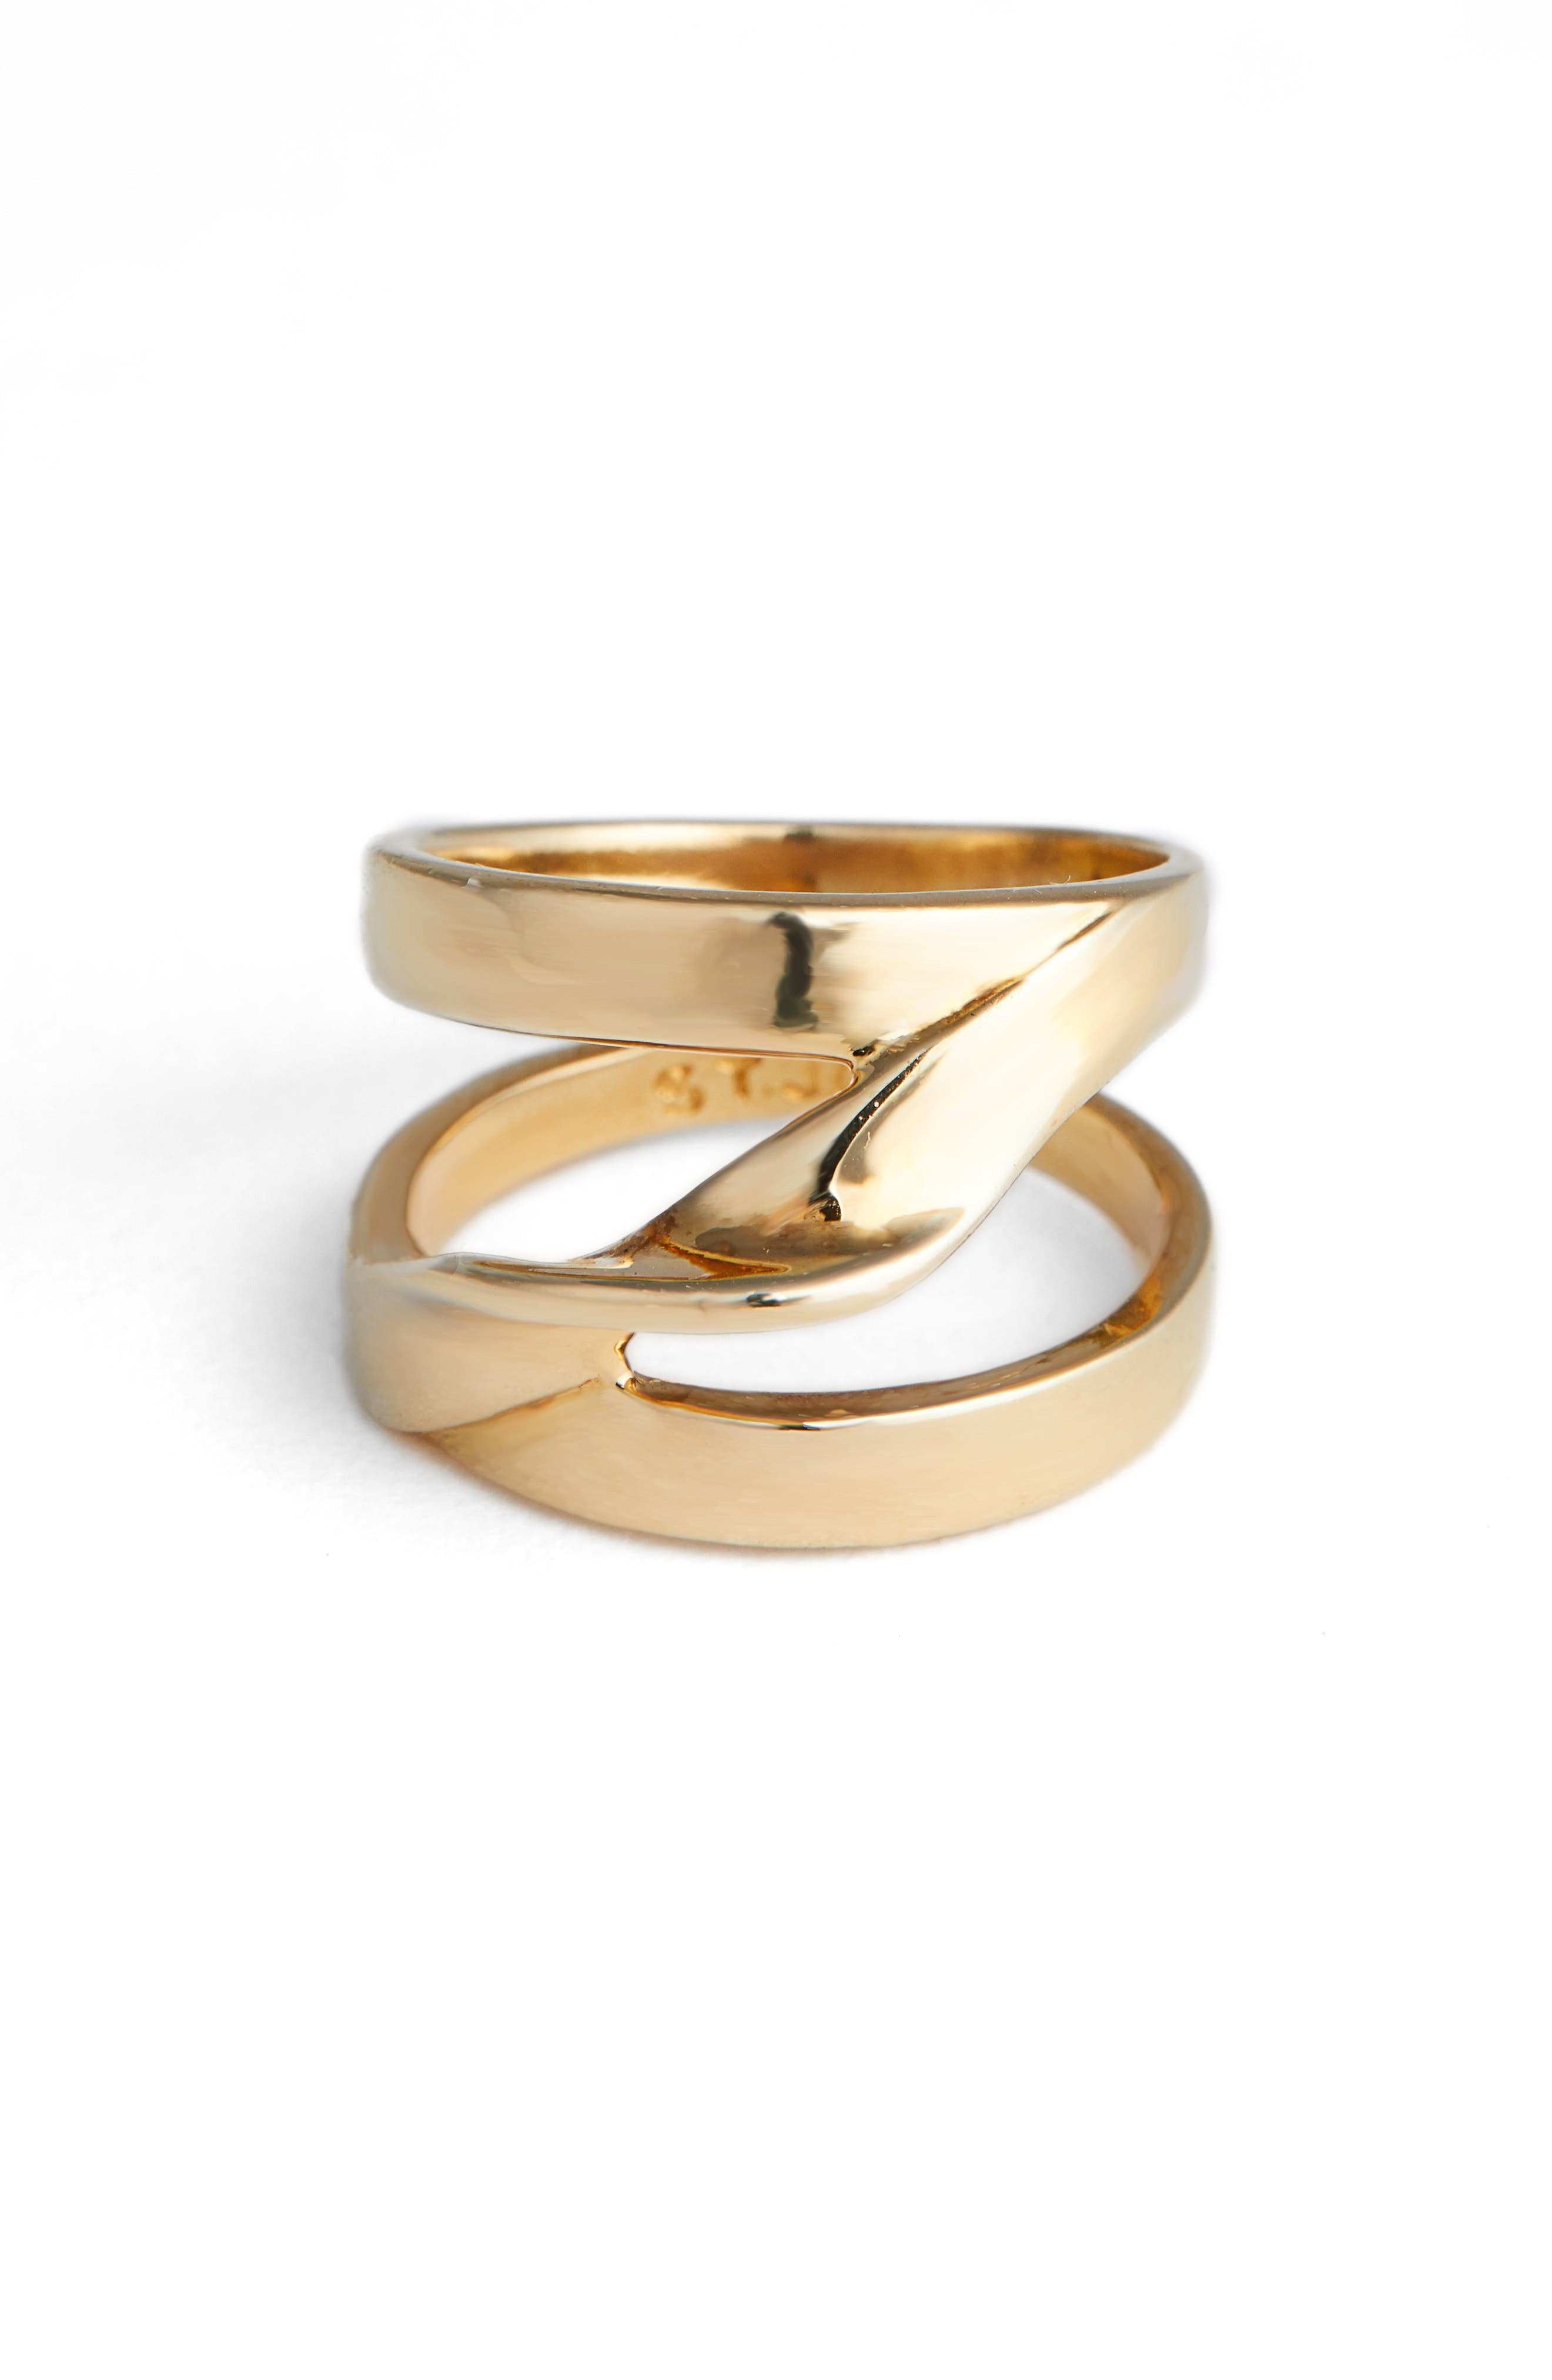 ST. JOHN COLLECTION Twist Metal Ring, Main, color, LIGHT GOLD